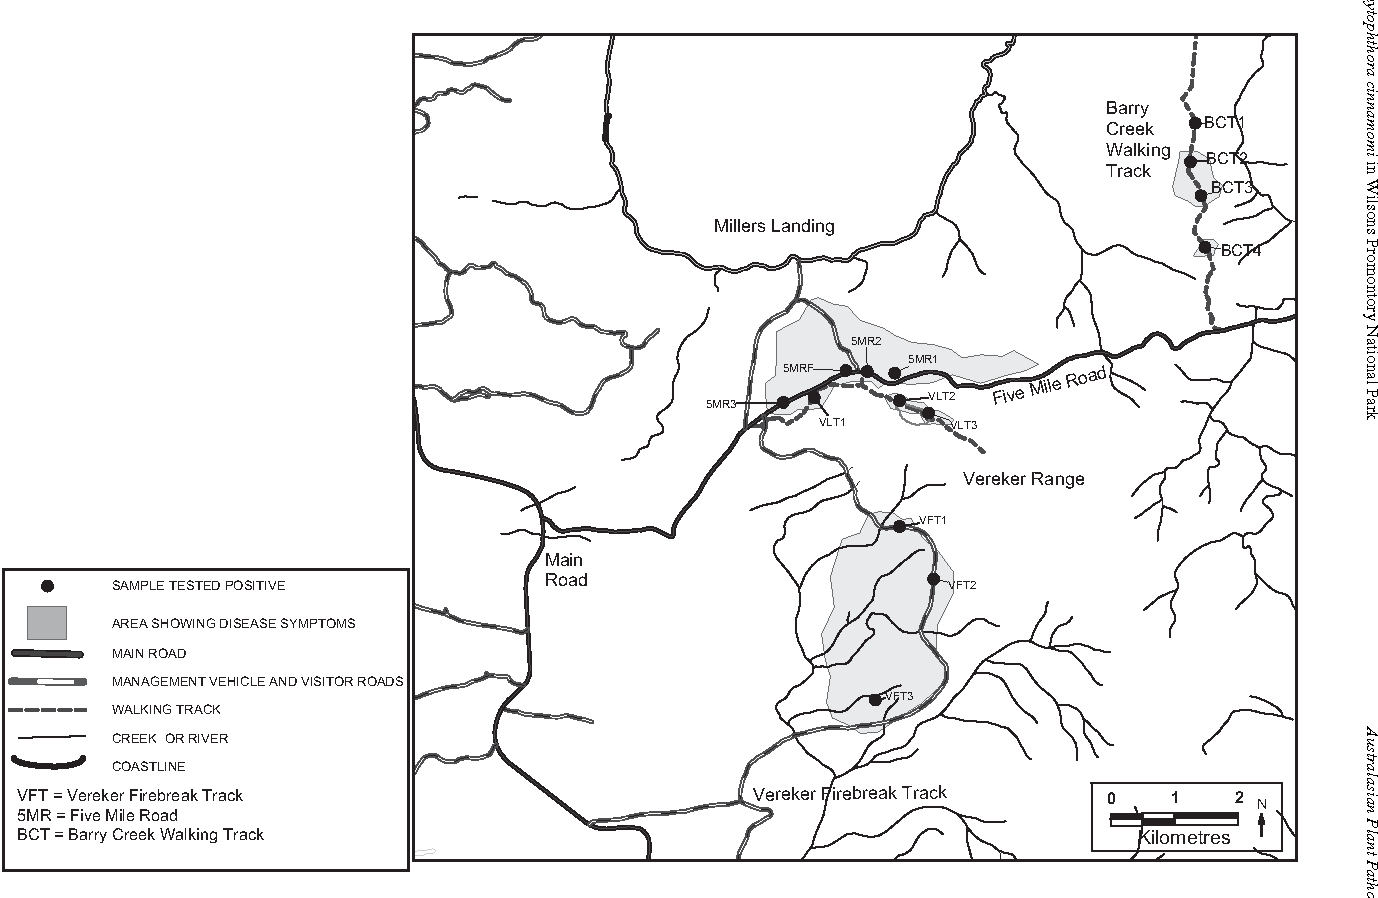 Fig. 2. Detailed map of the northern region of the Park centred on the Vereker Range showing sampling sites and areas with disease symptoms (shading). Main roads, tracks and watercourses are shown.